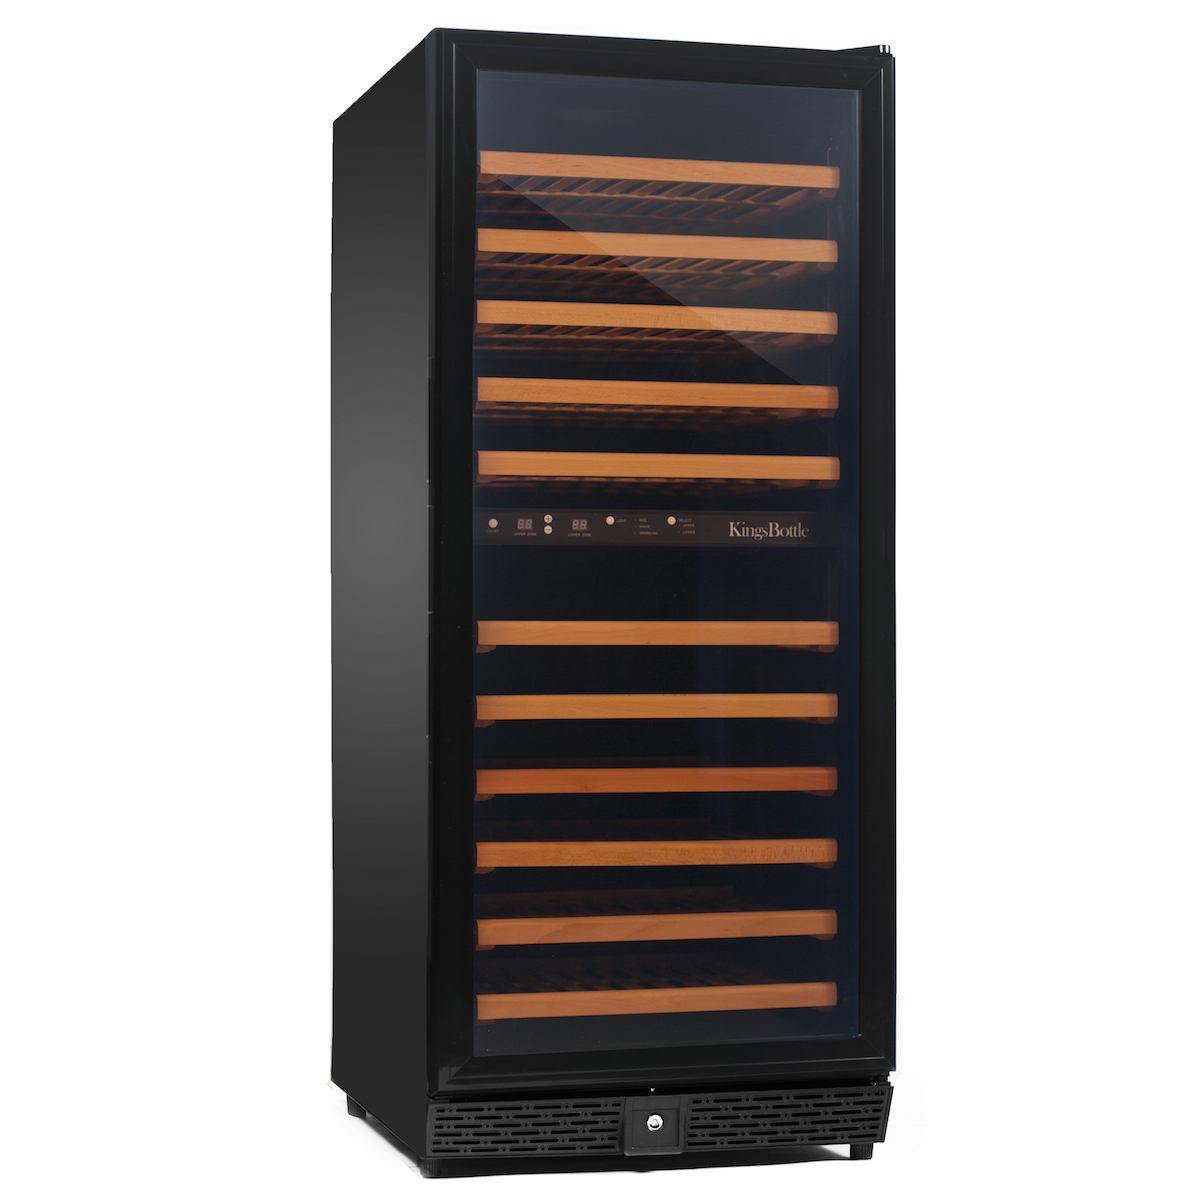 Kings Bottle KBU-120D-BP Dual Zone Compressor Glass Door Wine Cooler